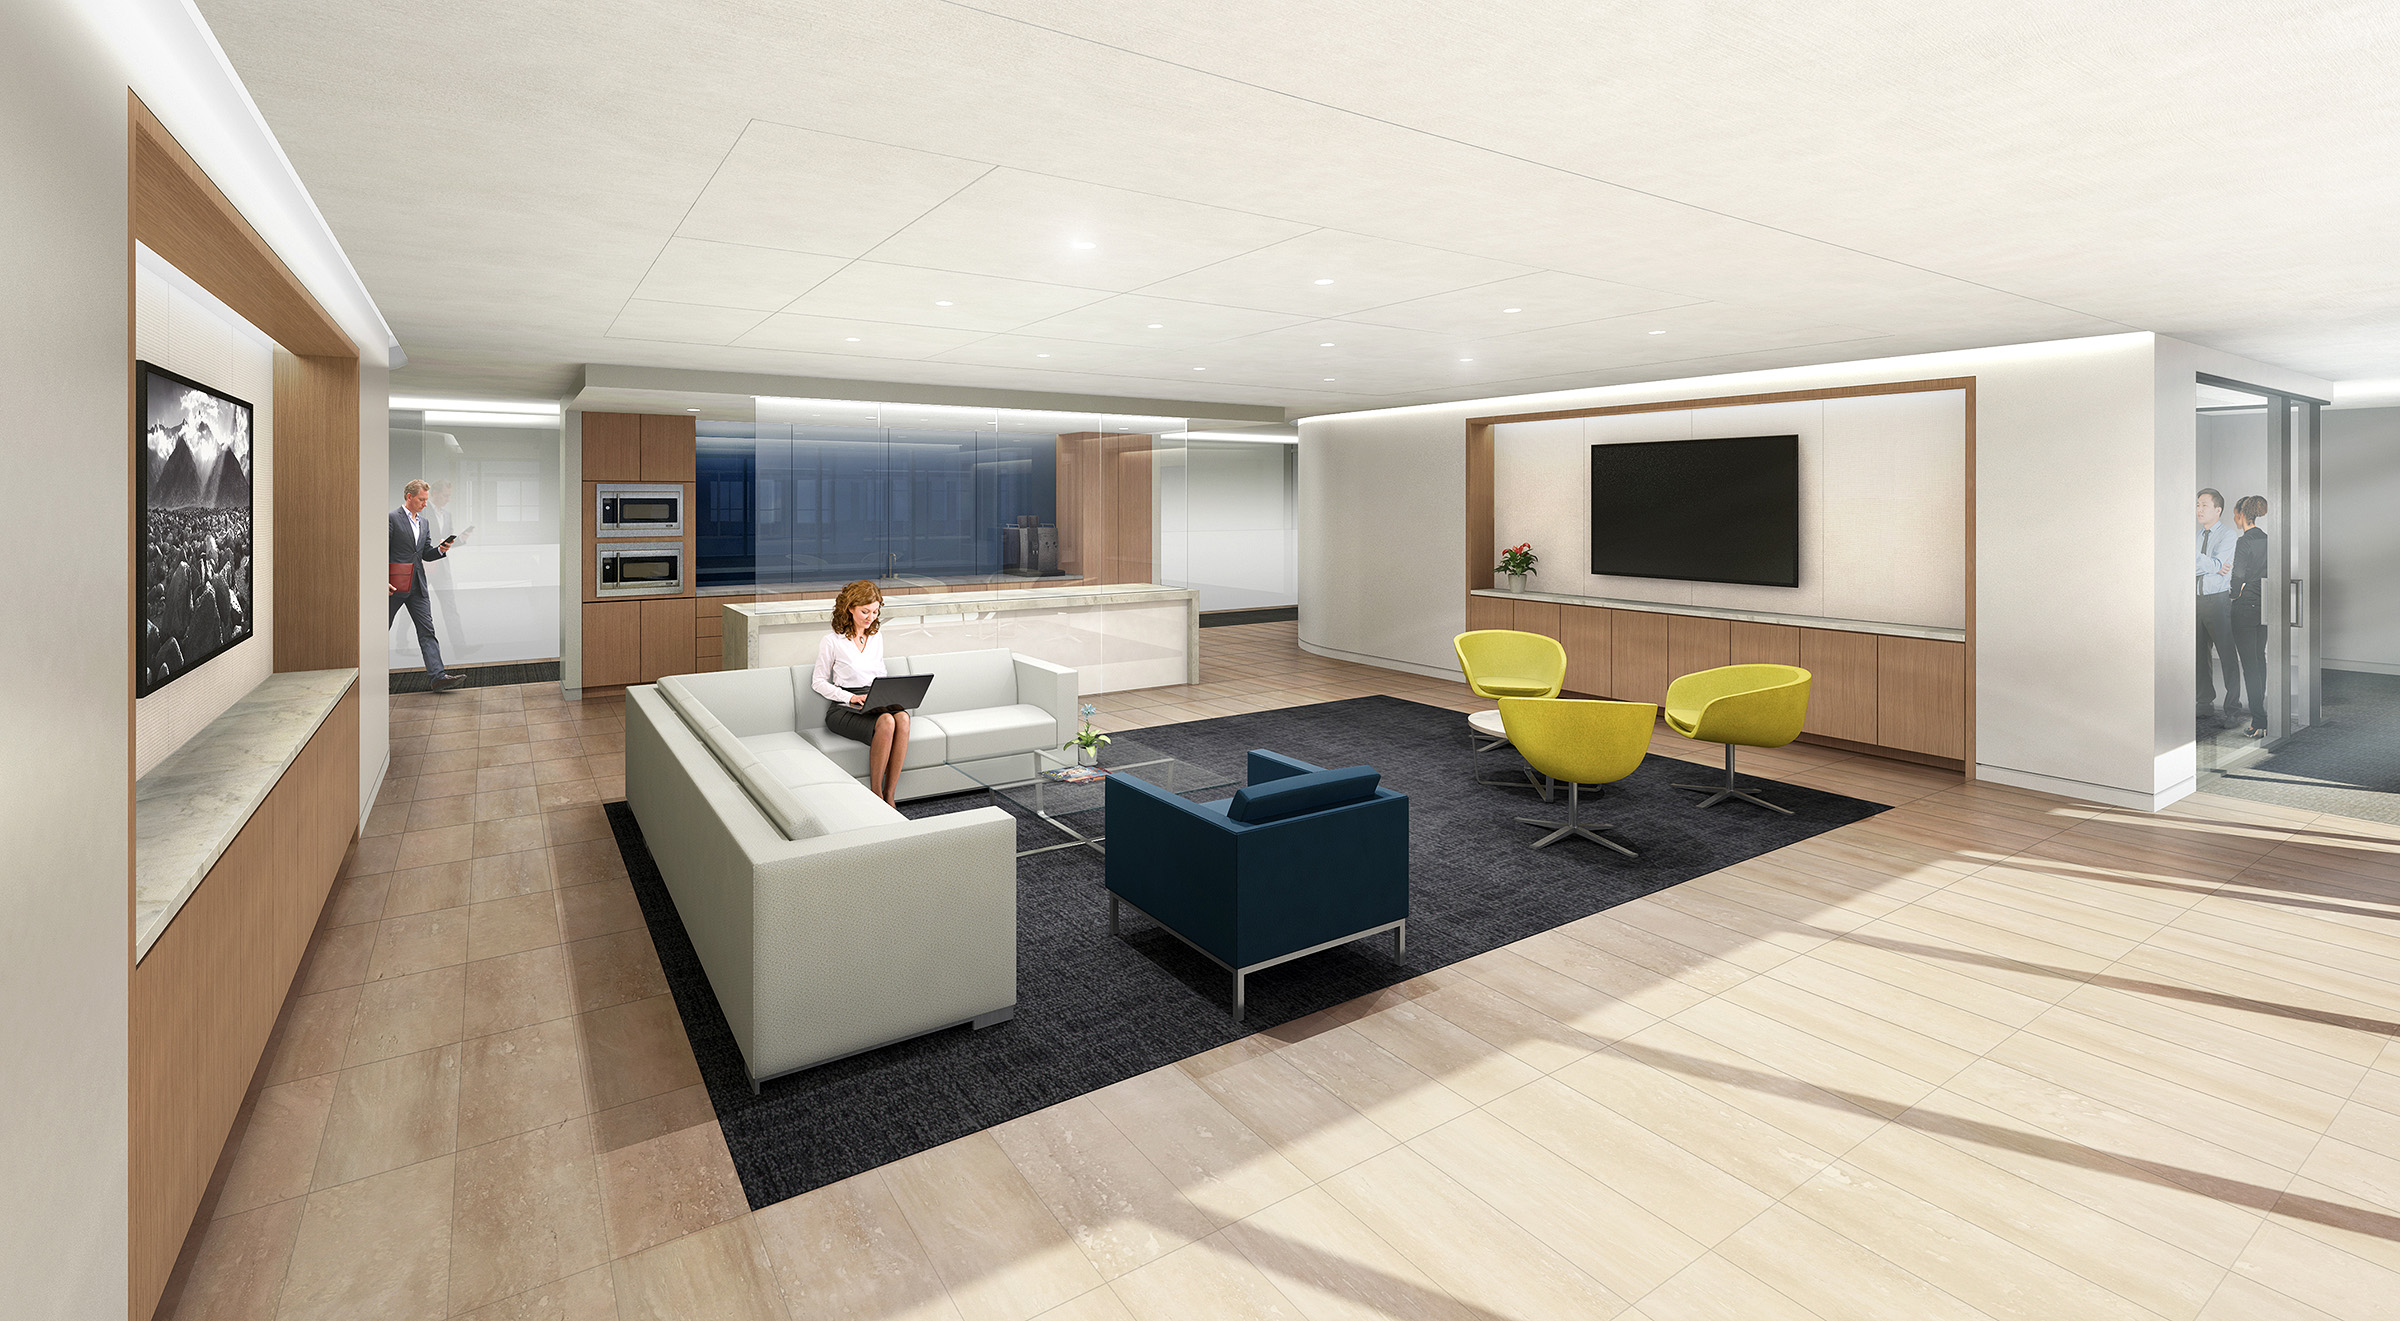 OFFICE CONCEPT  Washington, DC |  Client: HYL Architecture